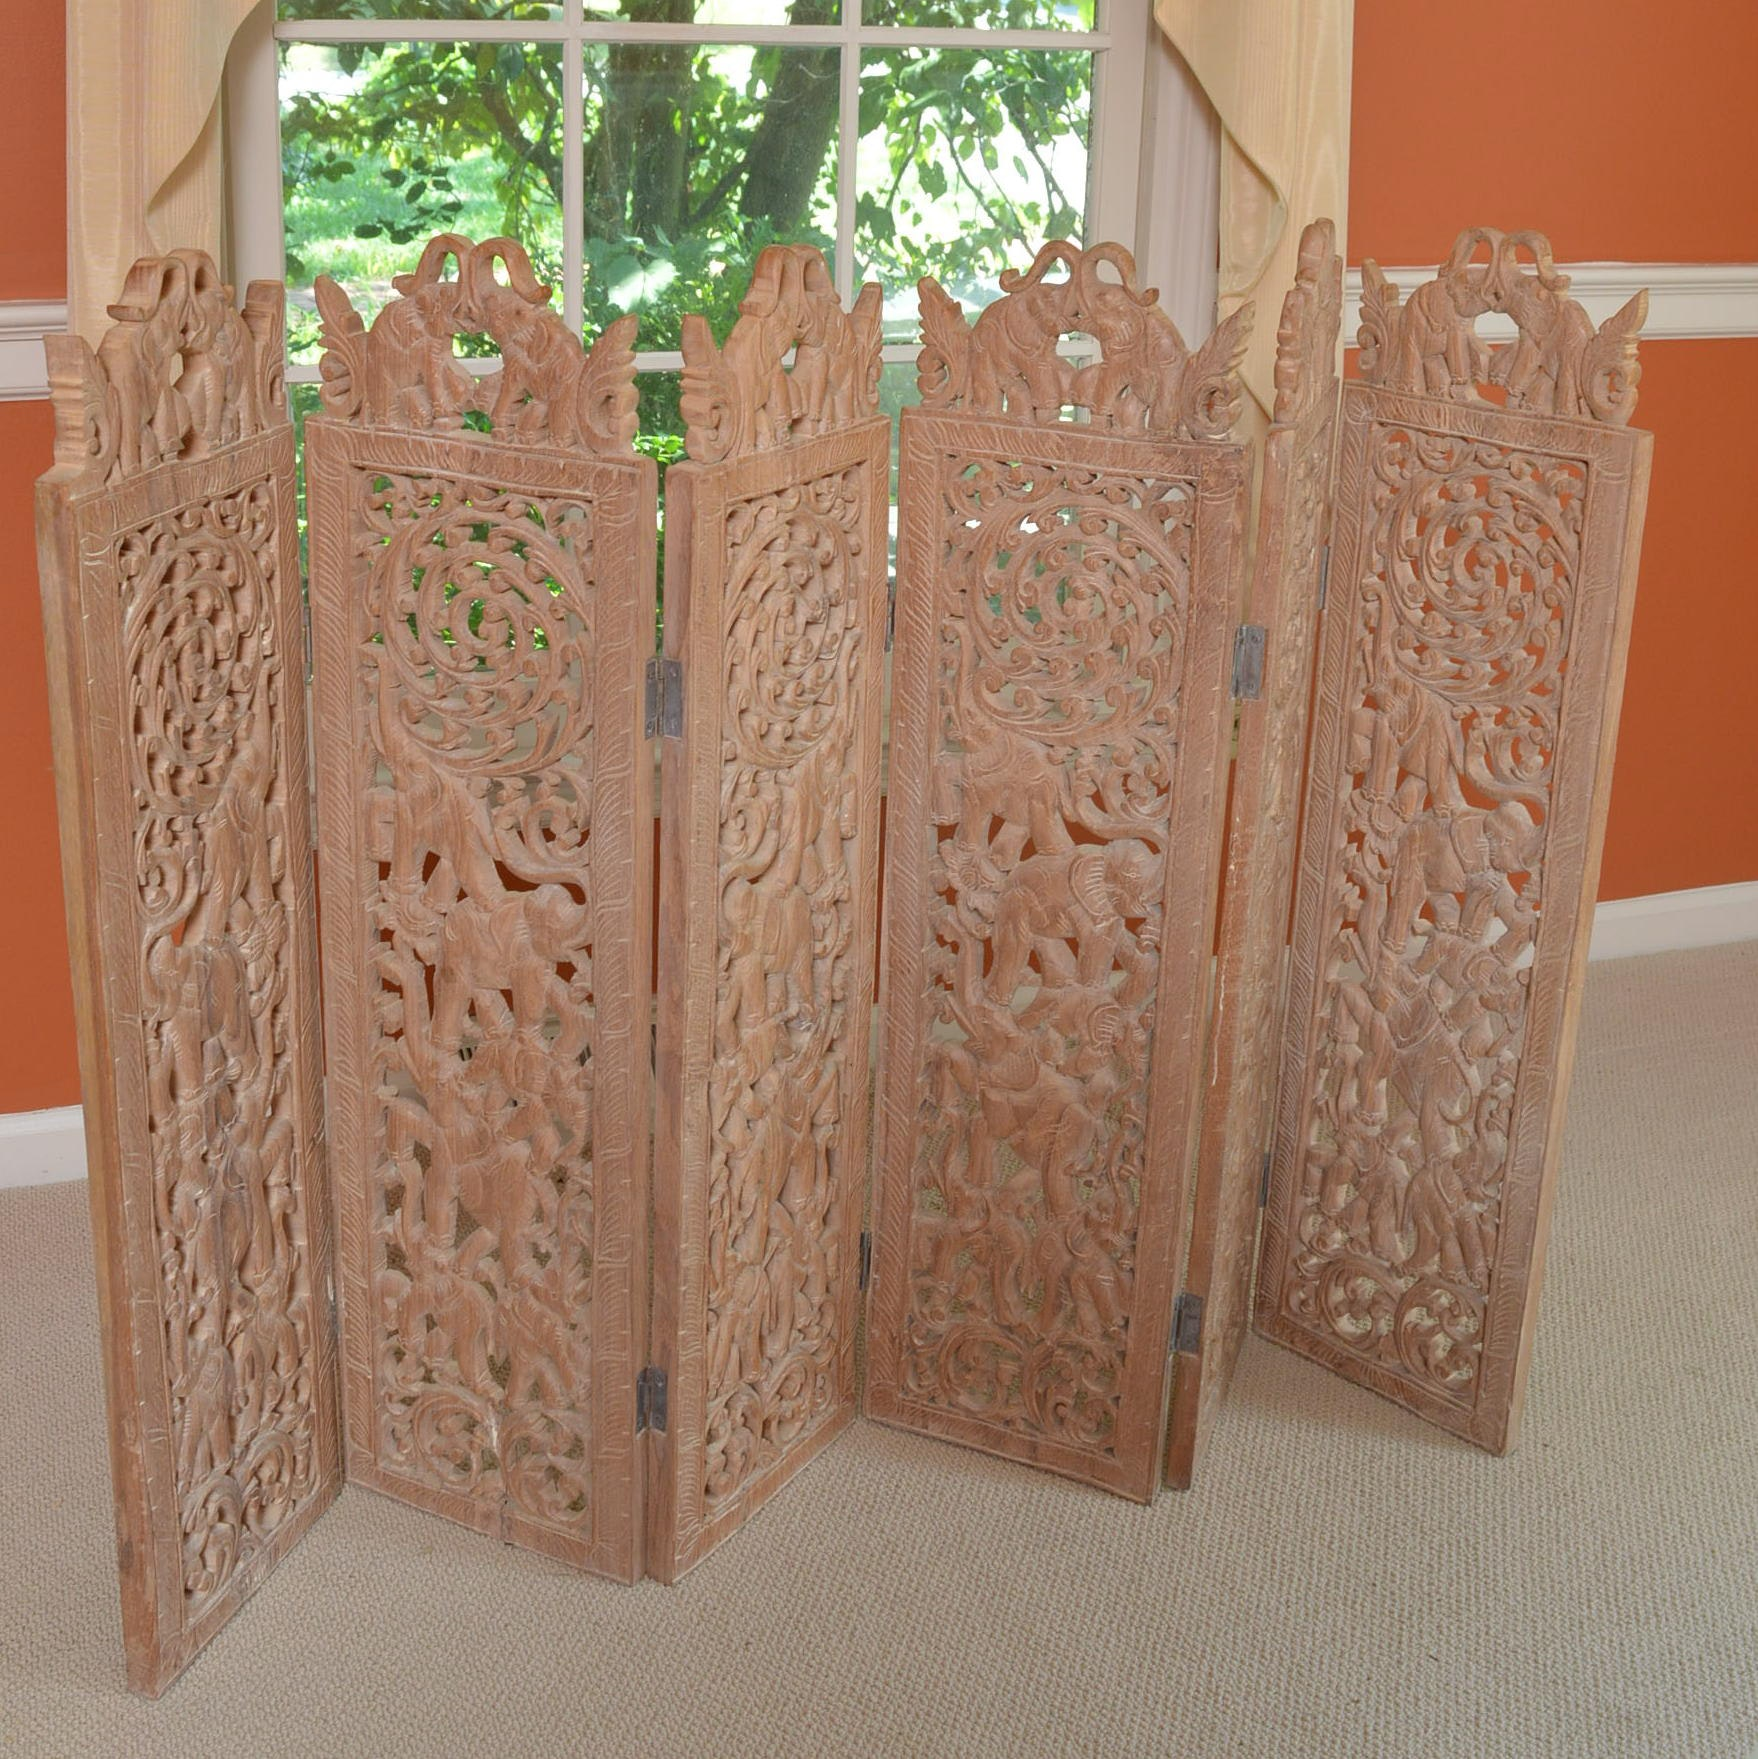 Elephant Motif Carved Six-Panel Wooden Folding Screen